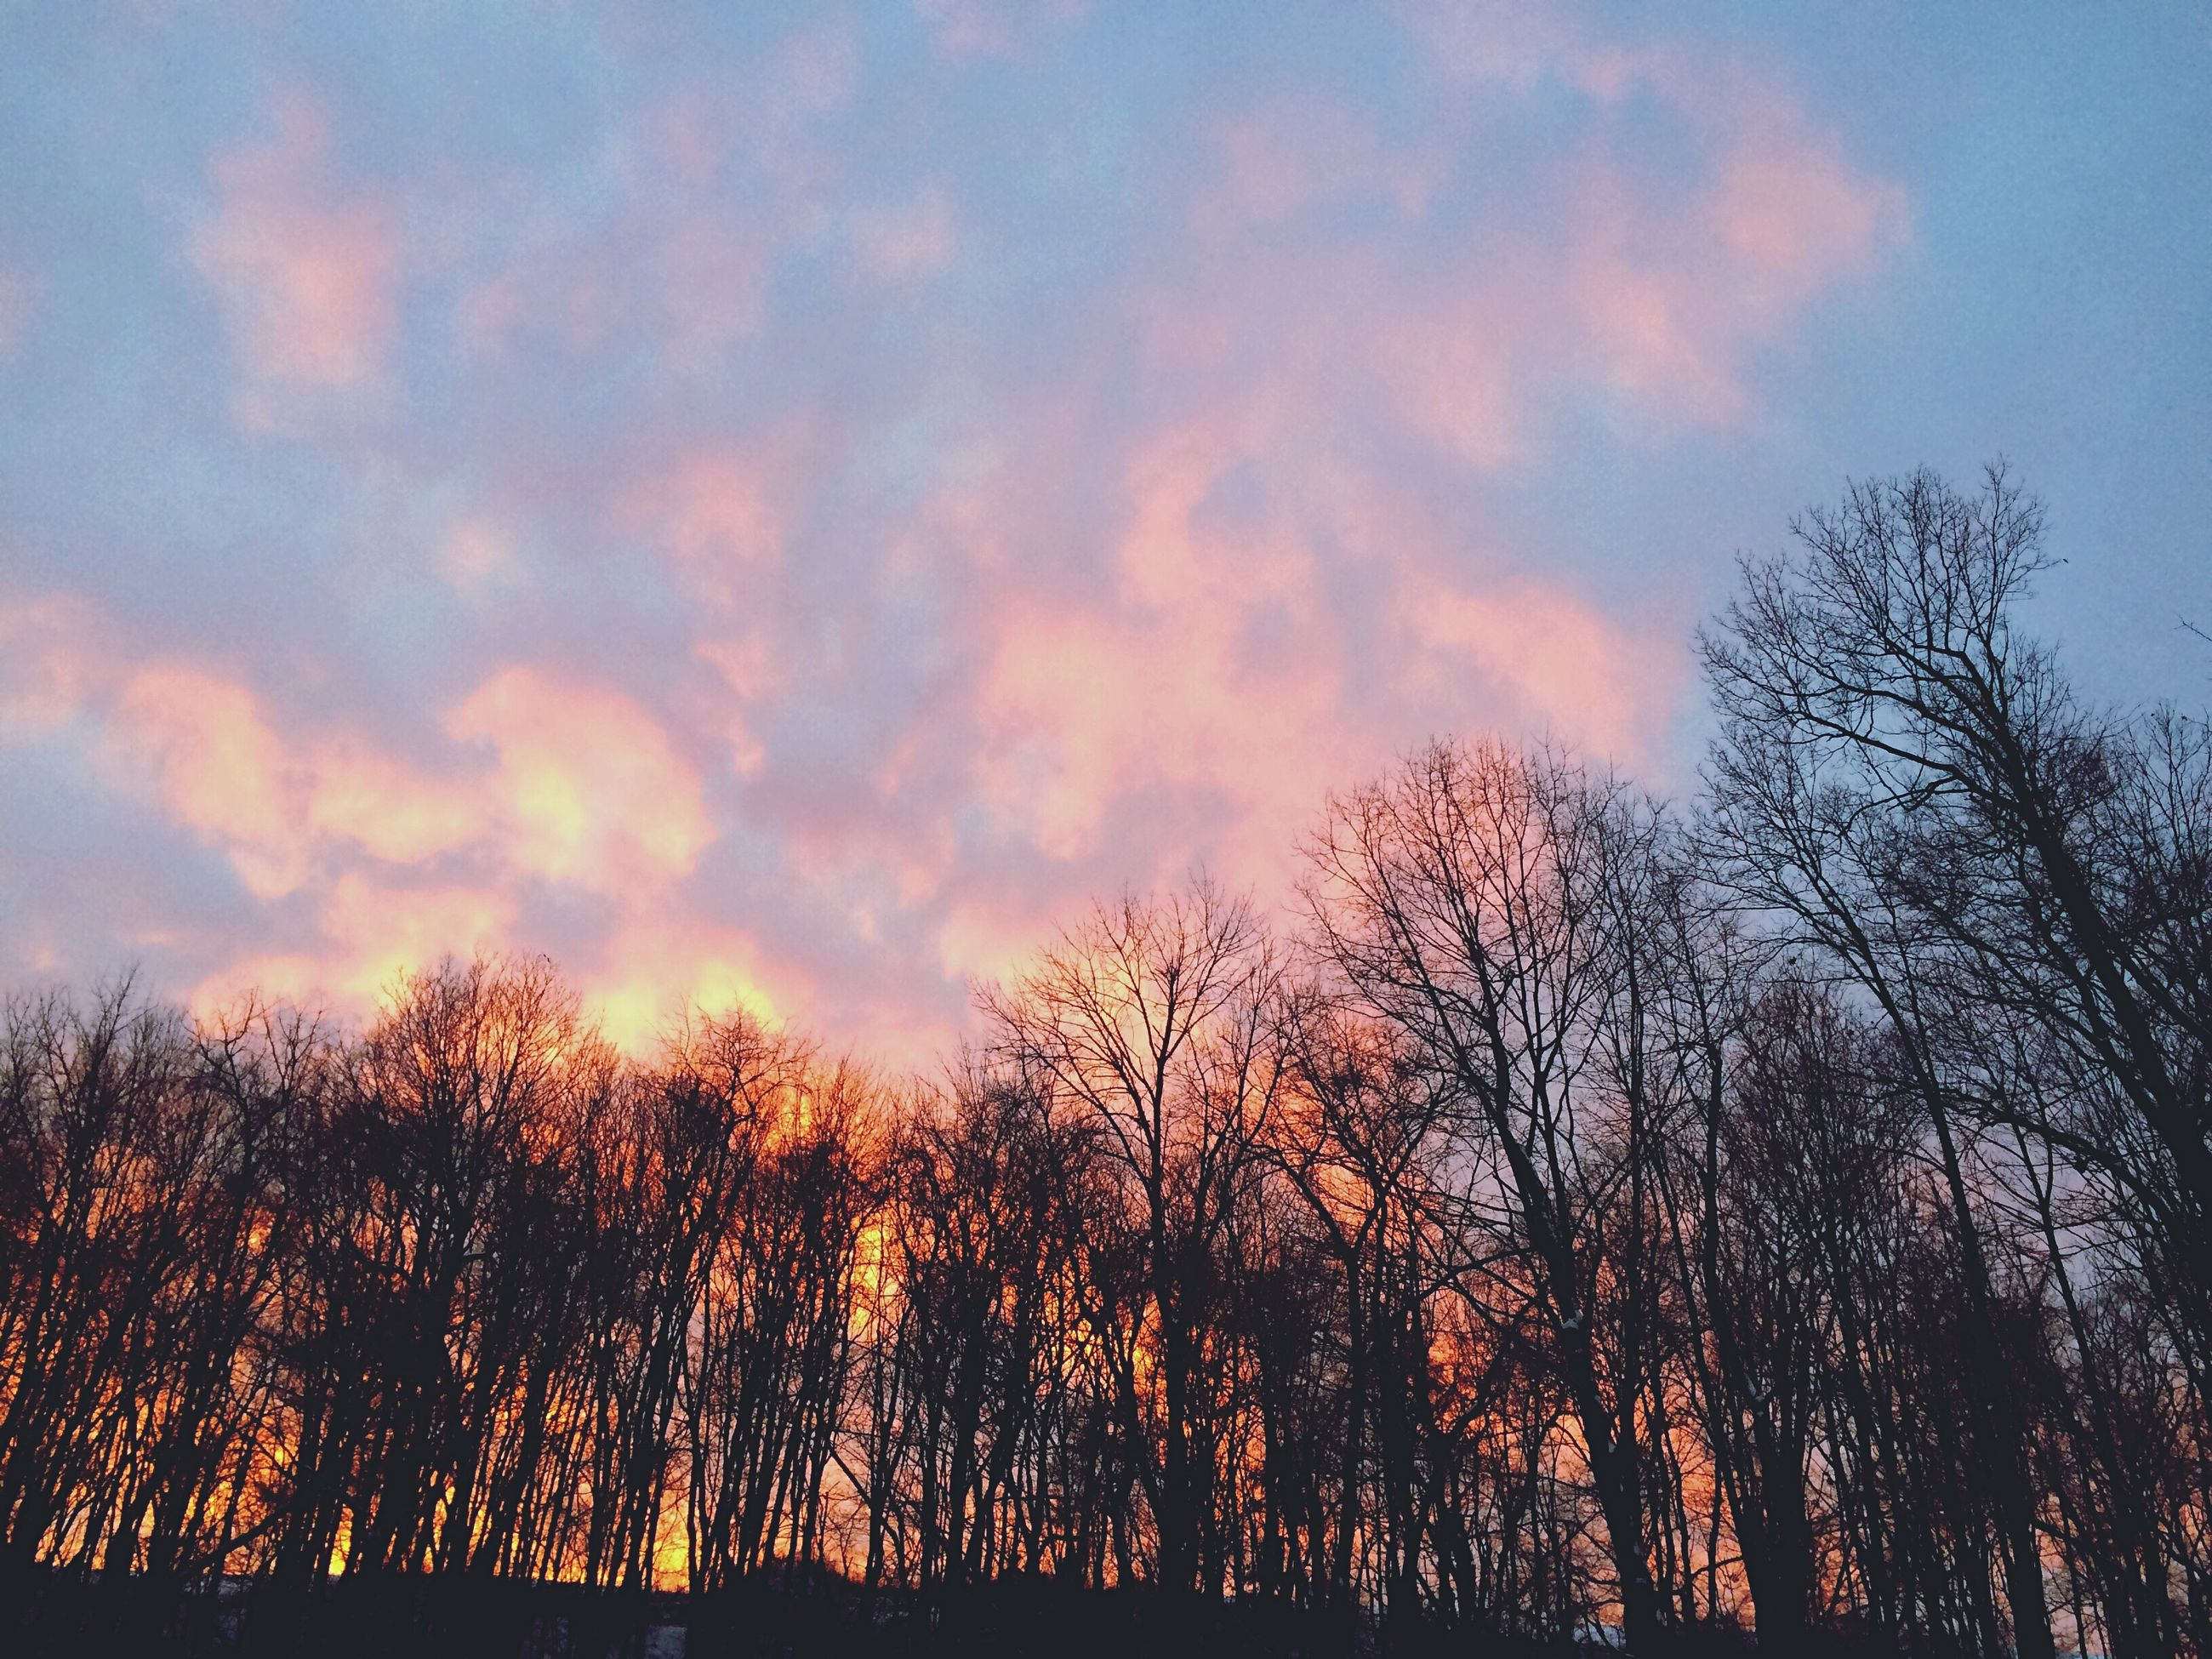 tree, sky, sunset, silhouette, tranquility, beauty in nature, low angle view, scenics, tranquil scene, cloud - sky, nature, bare tree, branch, growth, idyllic, orange color, cloud, outdoors, cloudy, no people